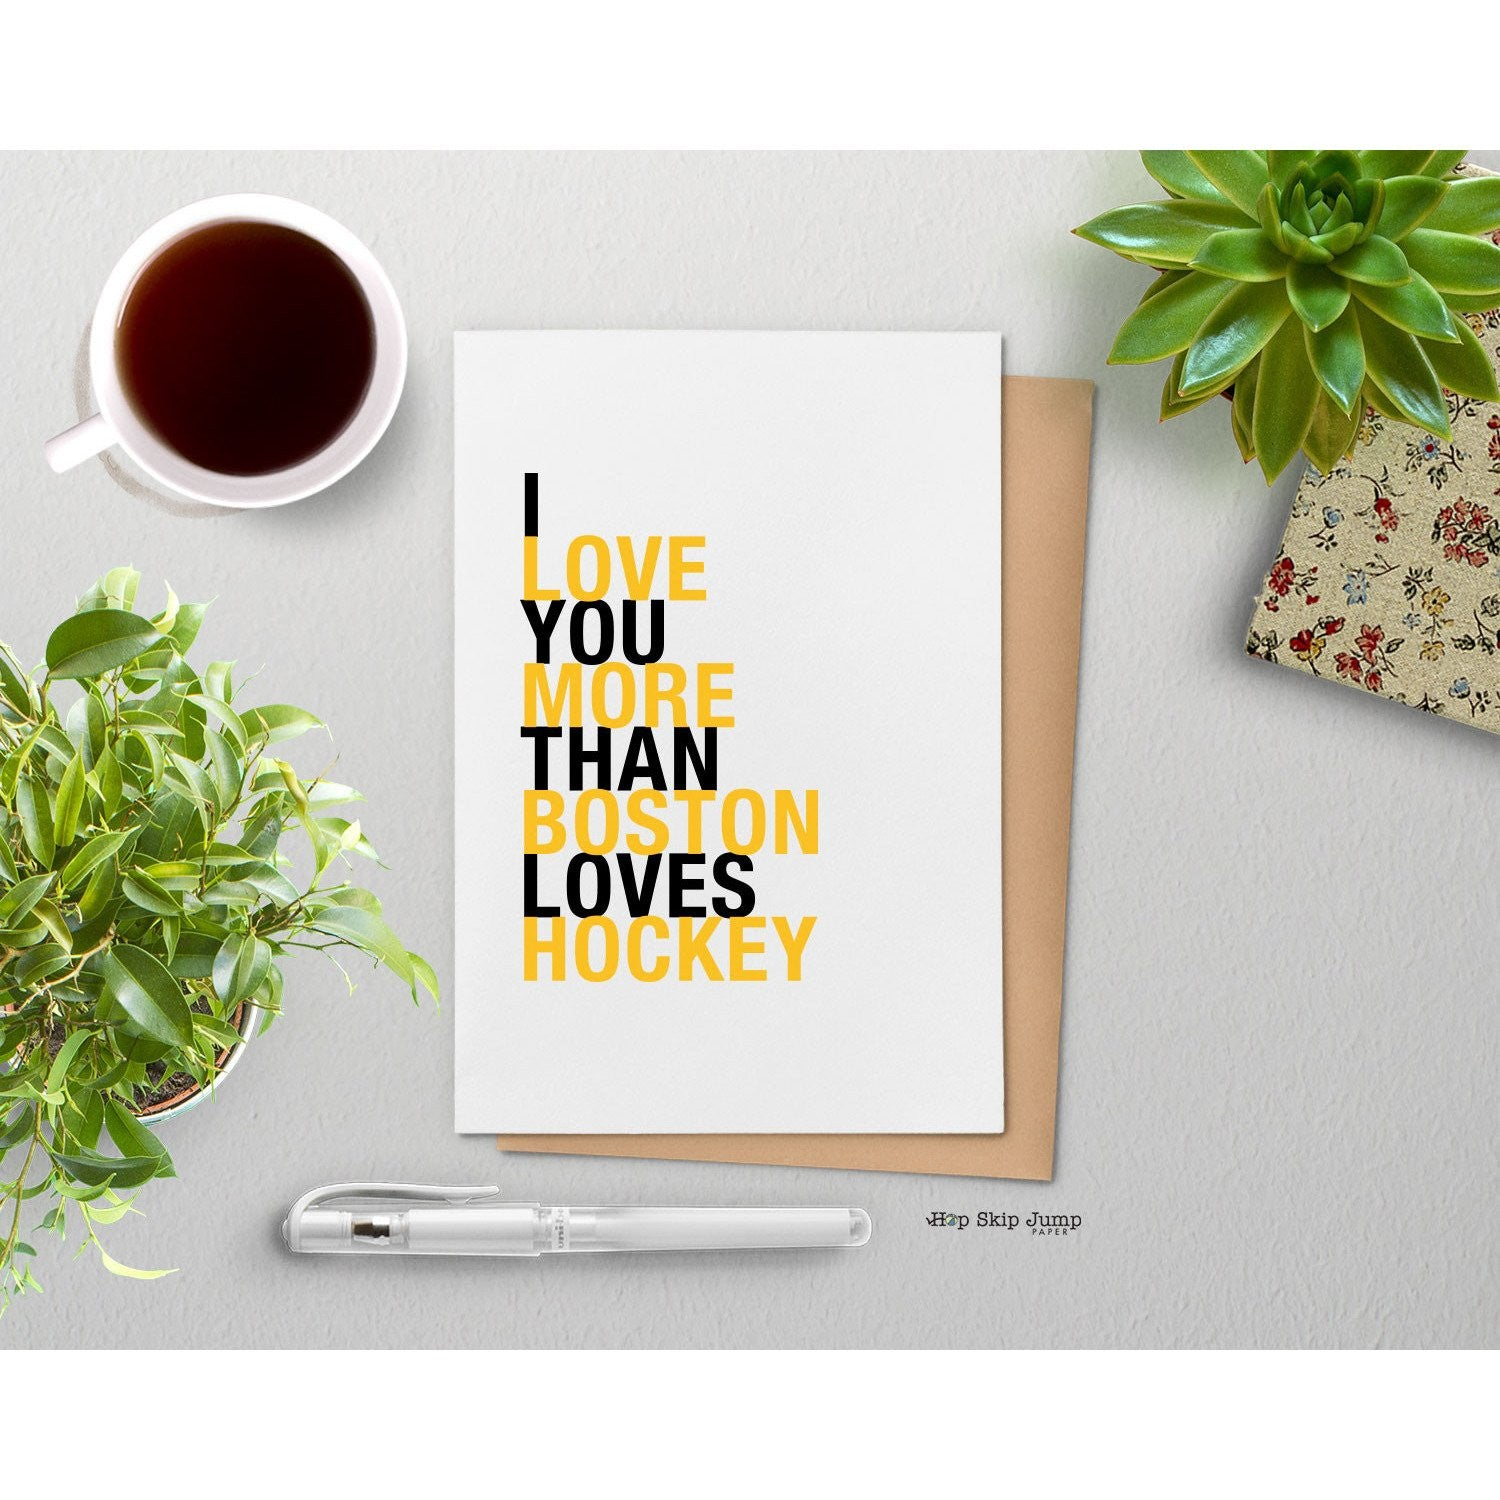 I Love You More Than Boston Loves Hockey greeting card  - Shop Online